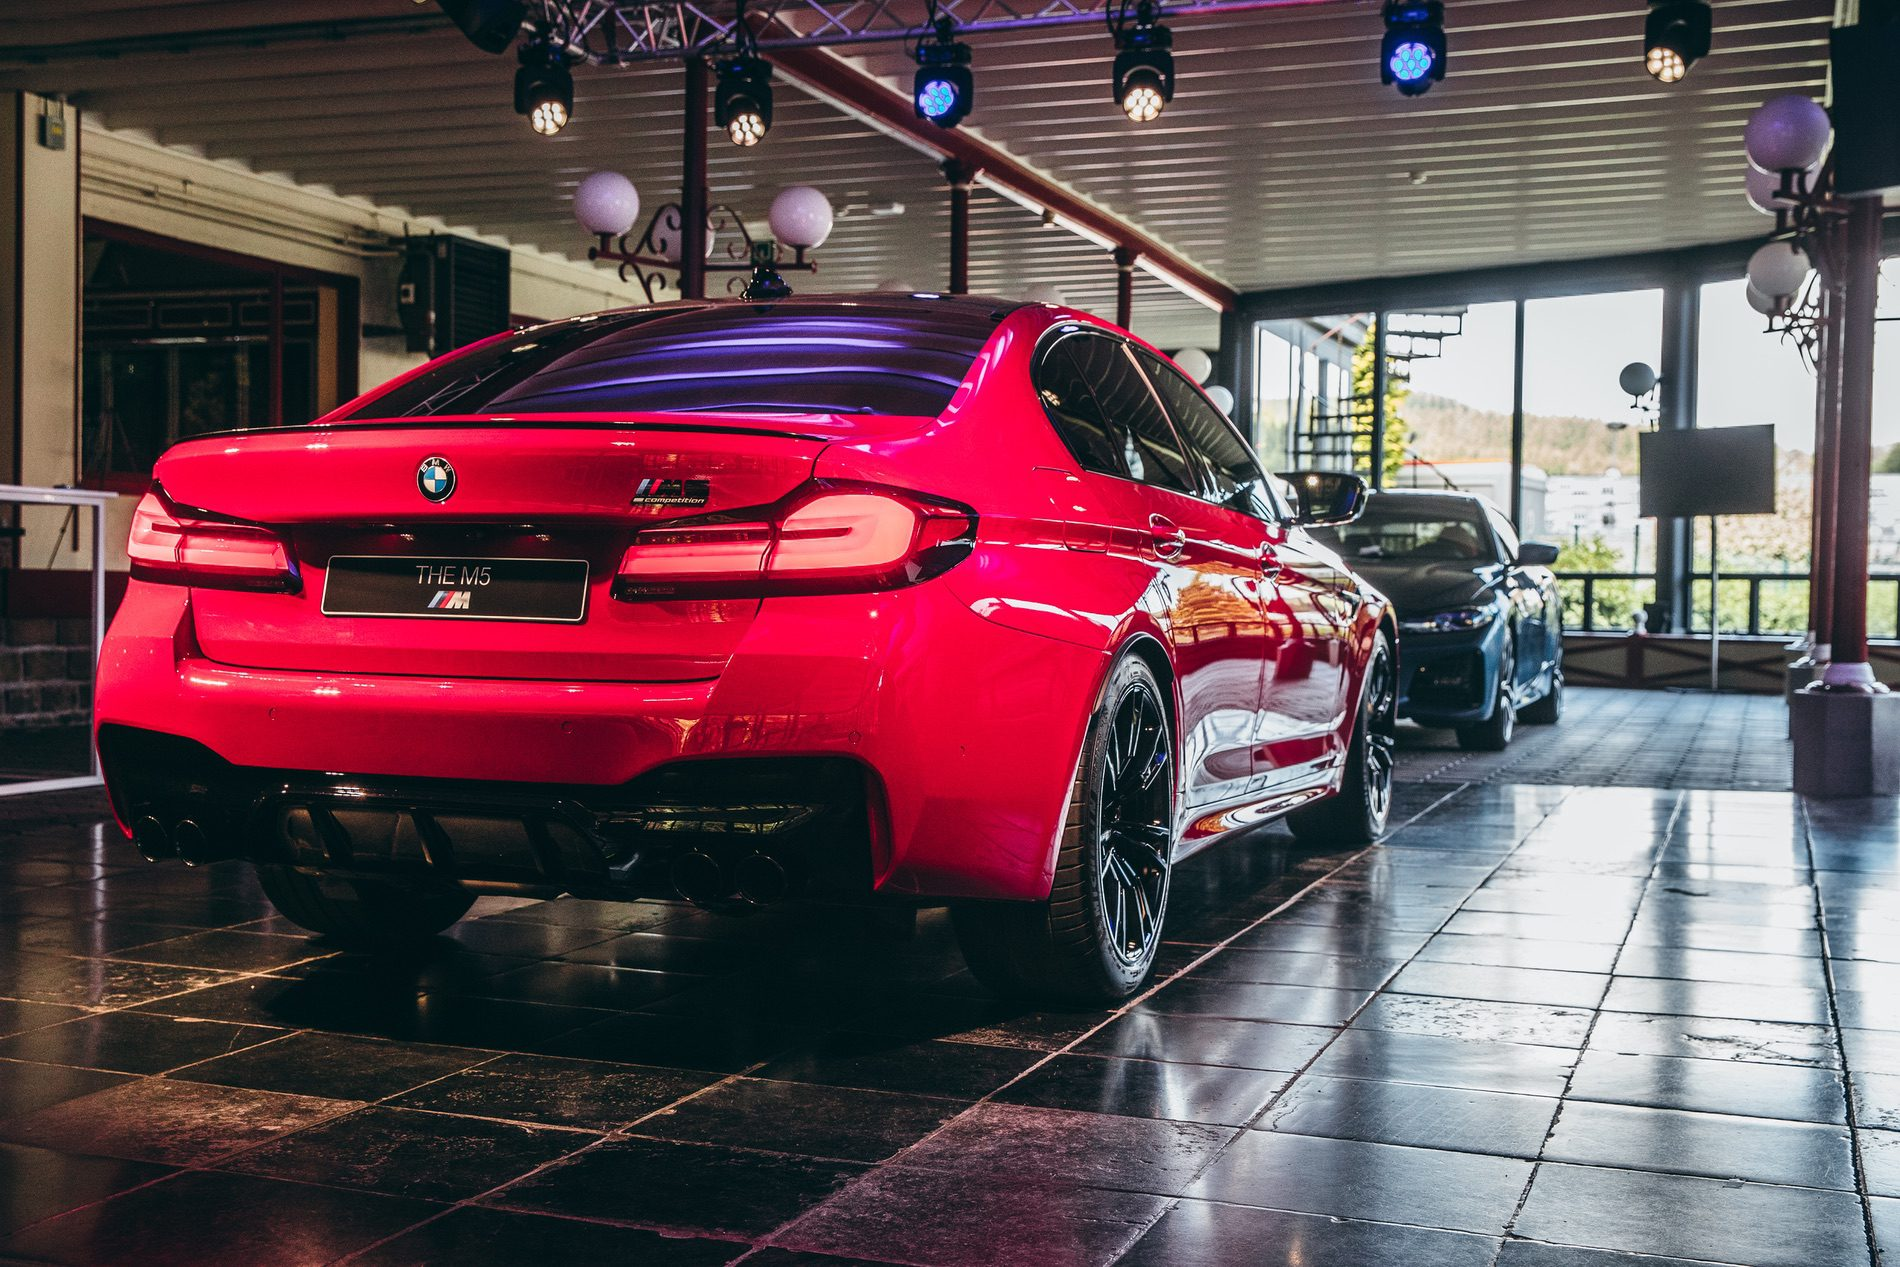 Real Life Photos 2021 Bmw M5 Facelift In Imola Red